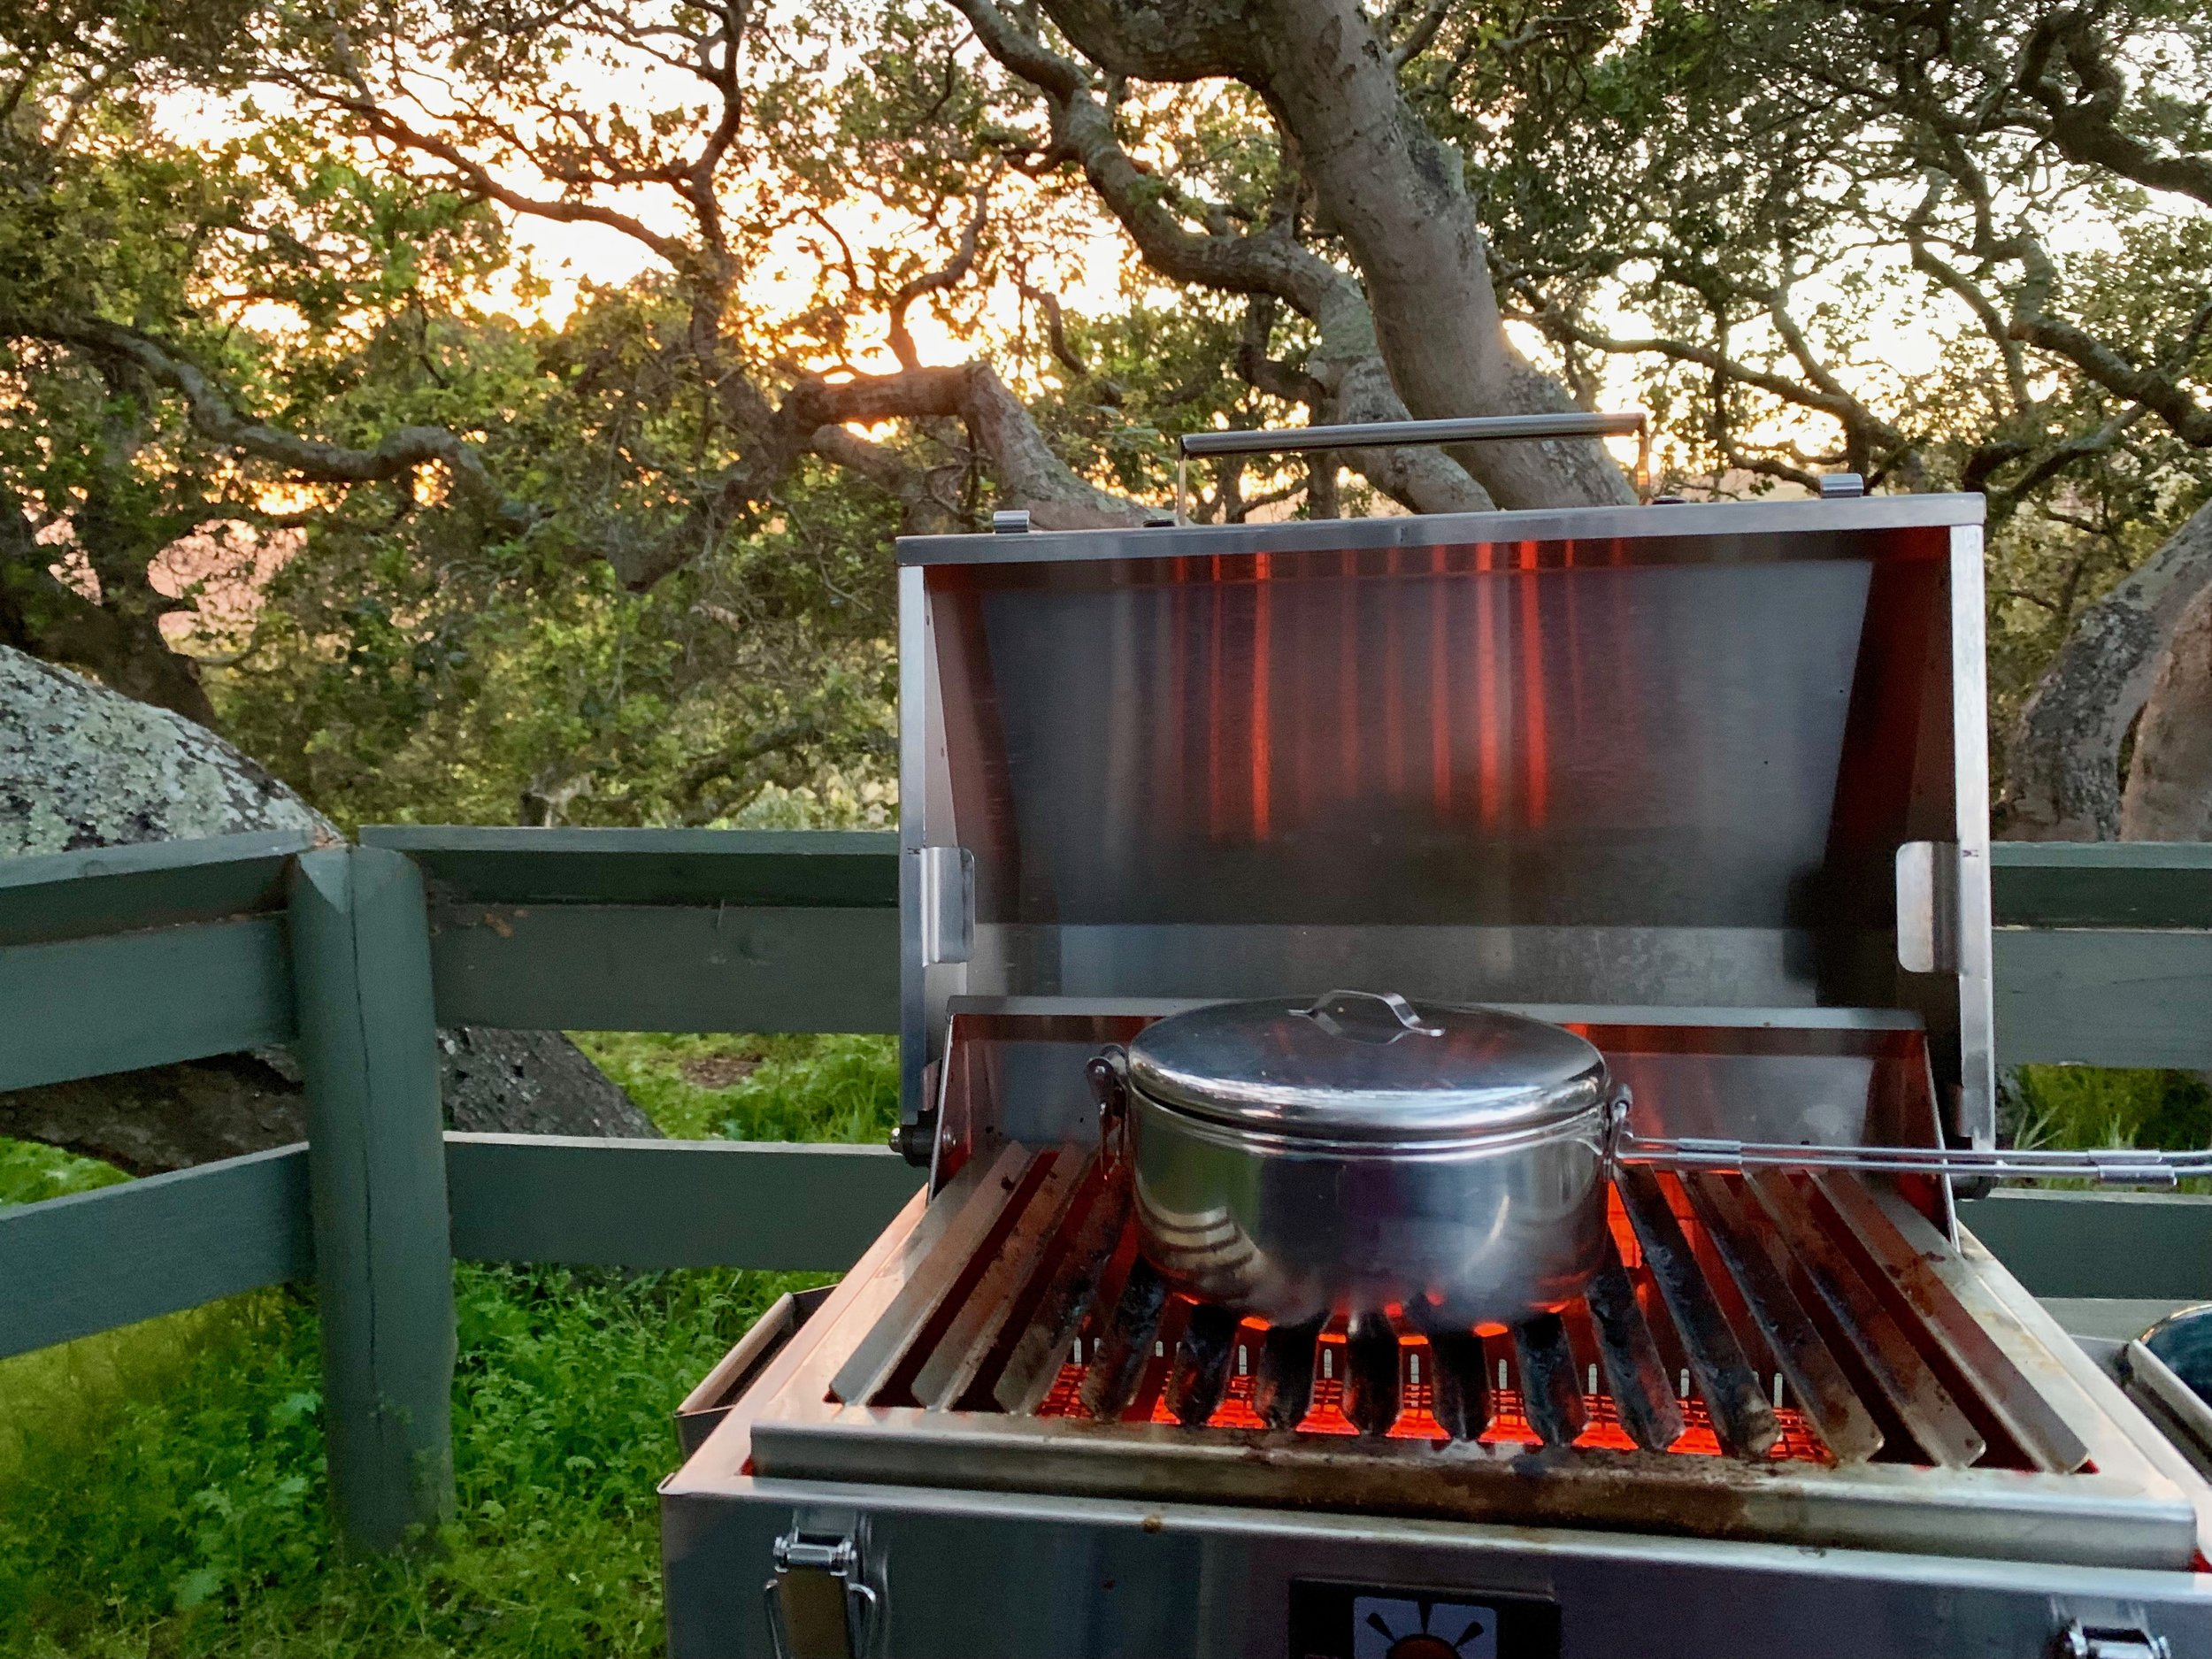 Cooking setup is perfect. Marine-grade anti-rust stove/BBQ.